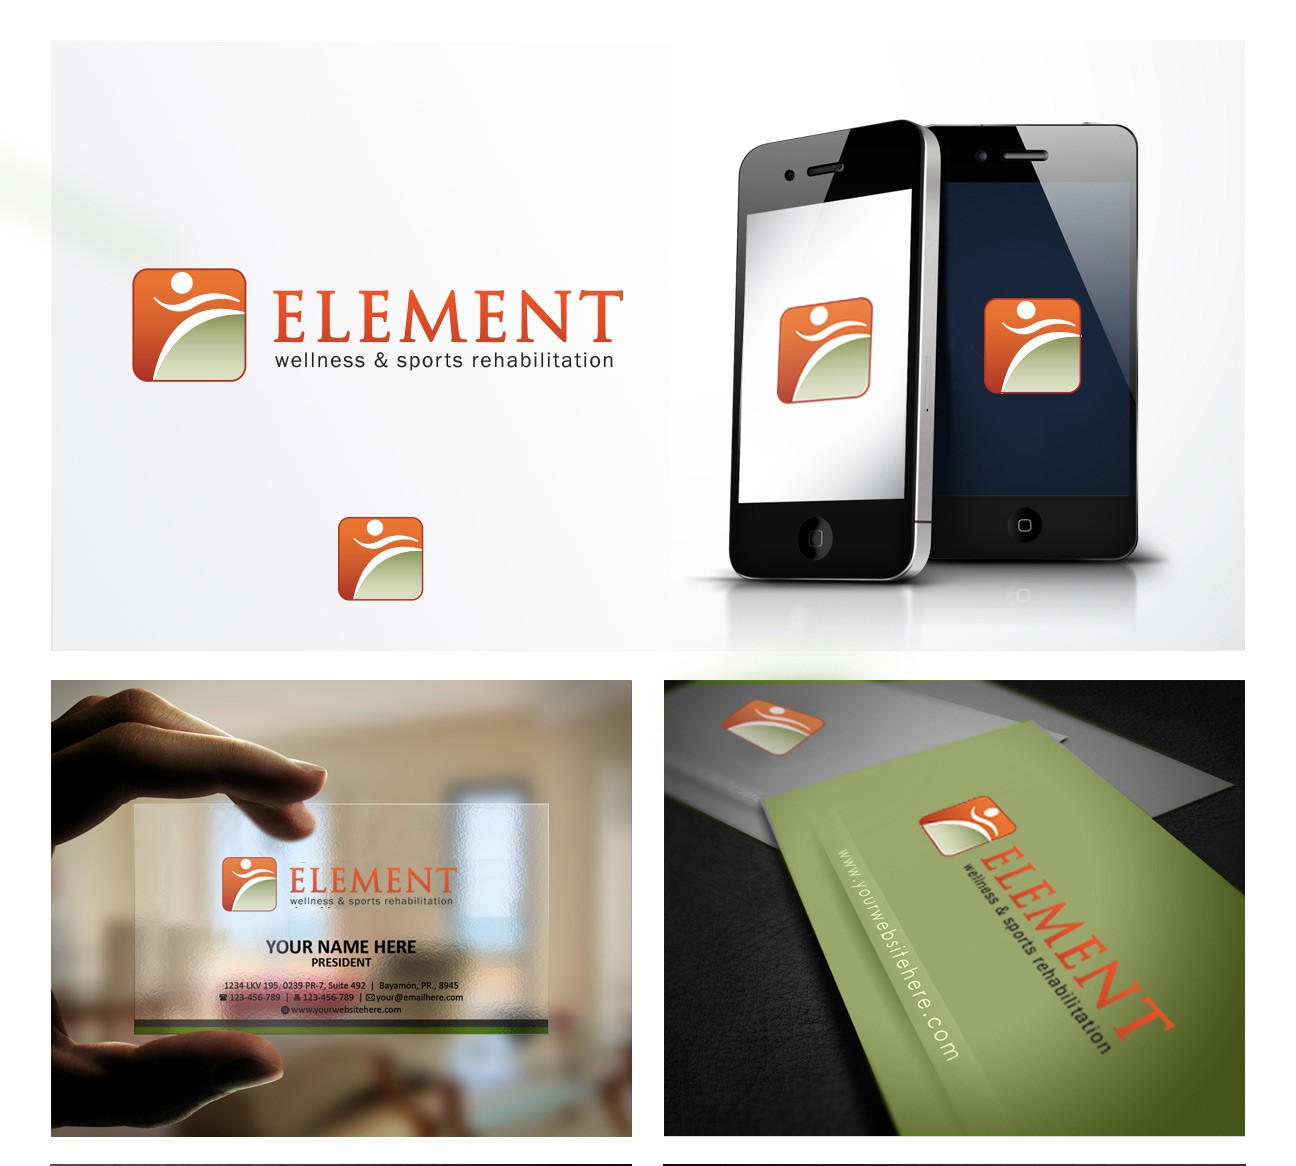 New logo wanted for Element Wellness and Sports Rehabilitation